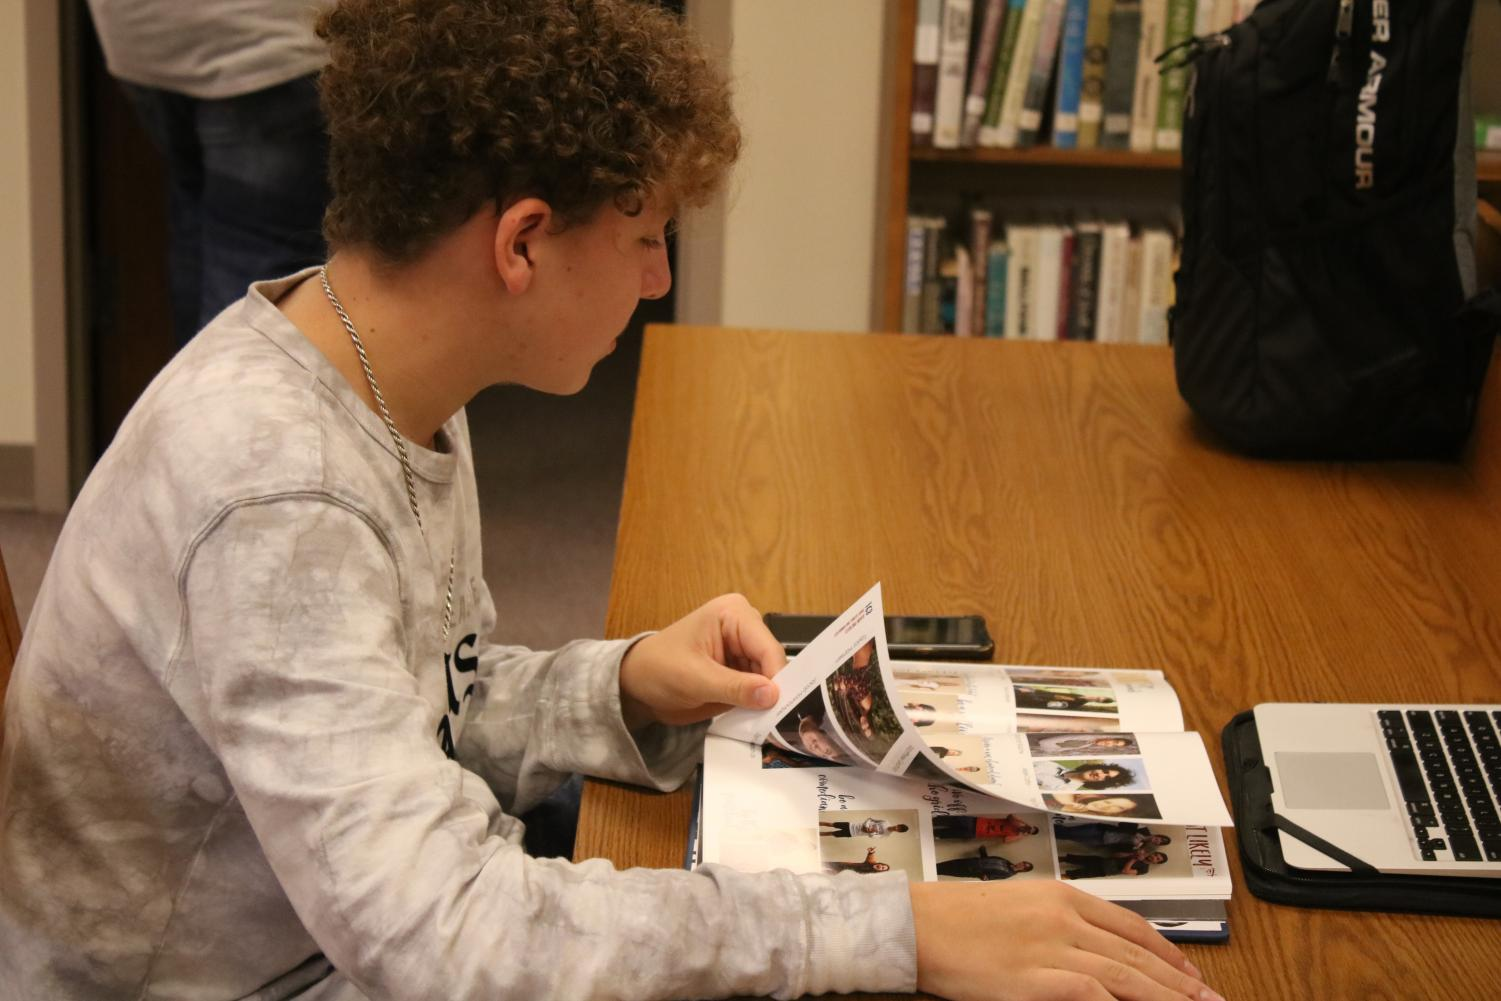 Junior Jarrit Smith scopes out the 2018-19 Javelin. The Yearbook Distribution event was held in the ICN room.